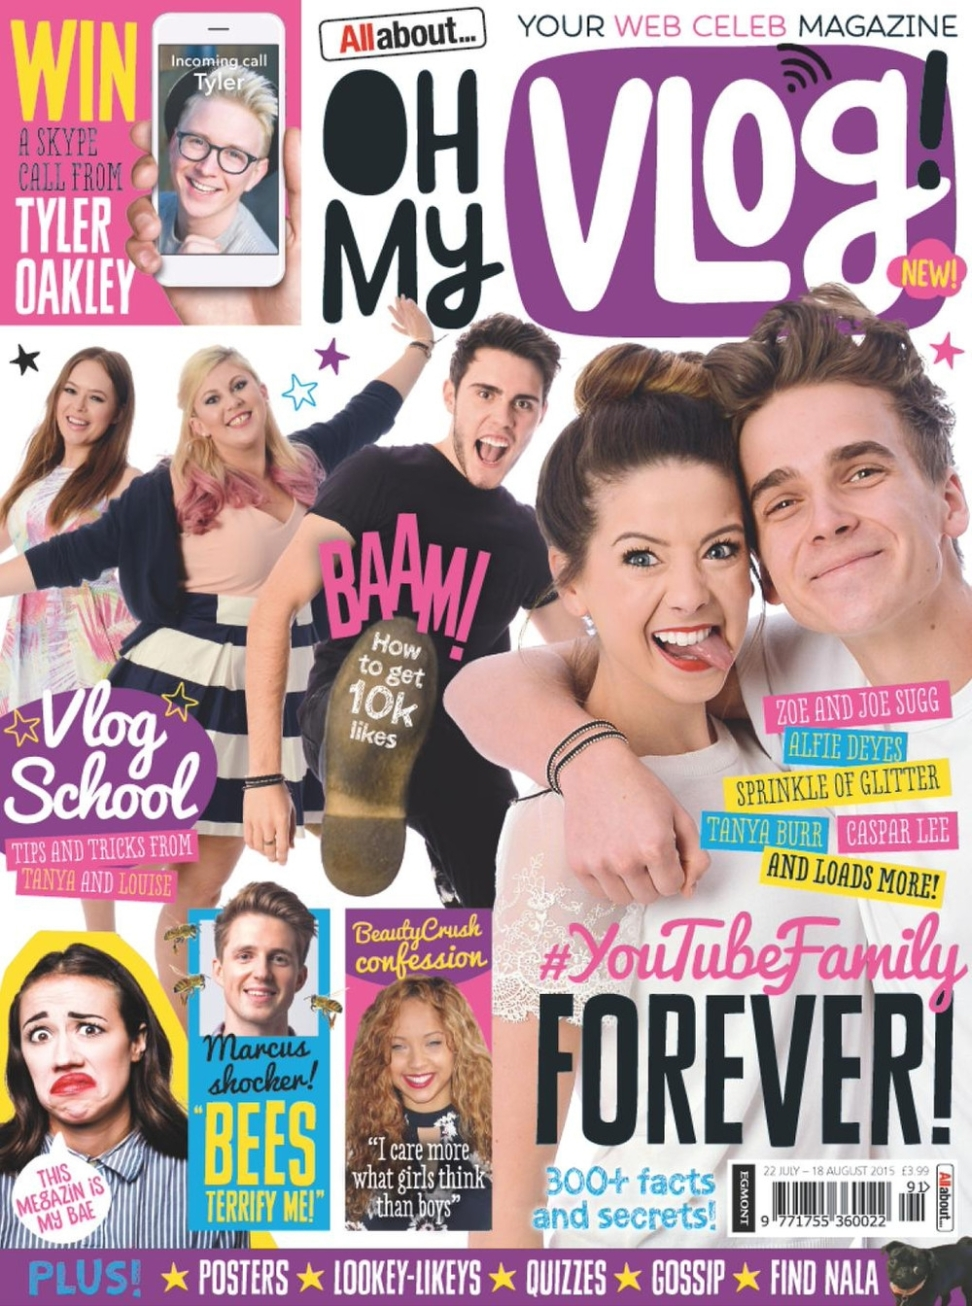 a-brief-overview-of-every-emotion-i-had-looking-at-the-cover-of-the-new-youtuber-magazine-oh-my-vlog-303-body-image-1437563882-size_1000